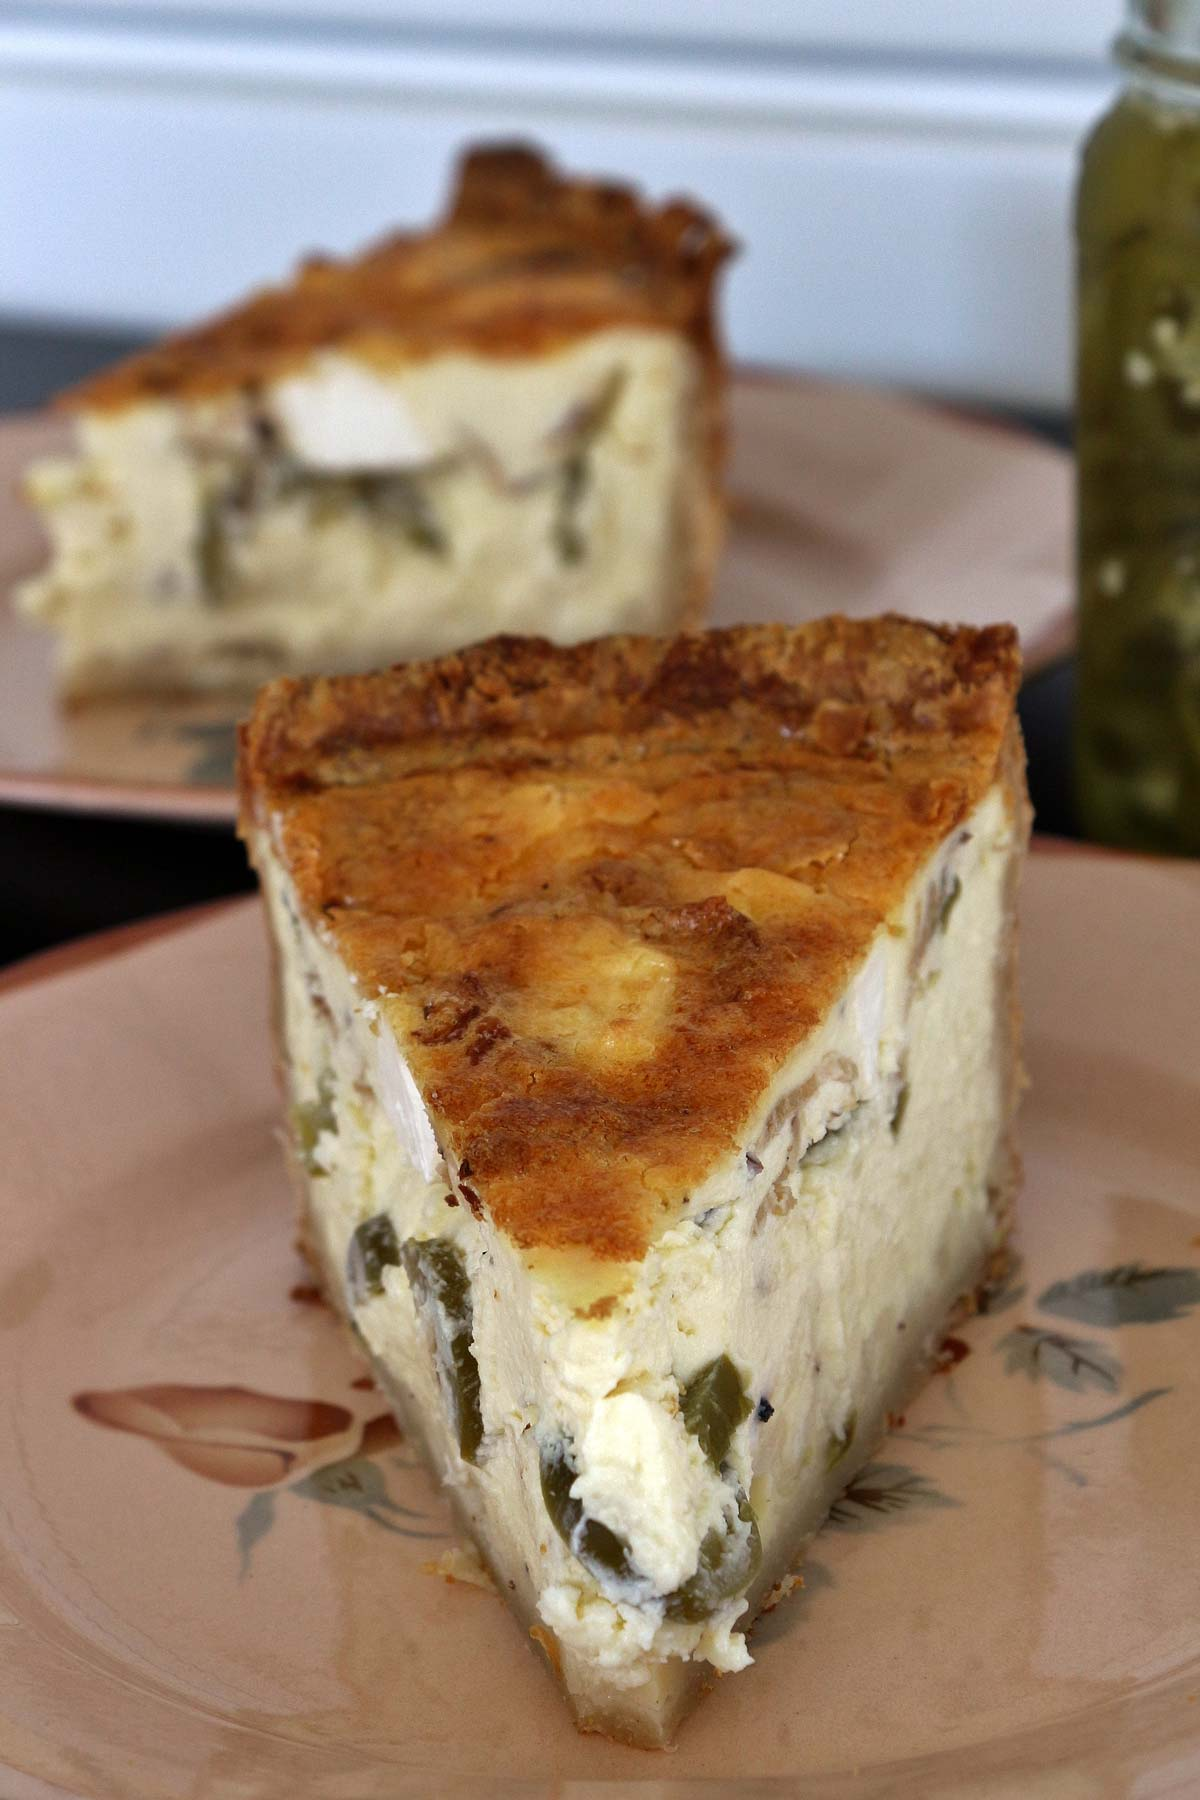 Closeup of a slice of jalapeño popper quiche with another slice in the background.